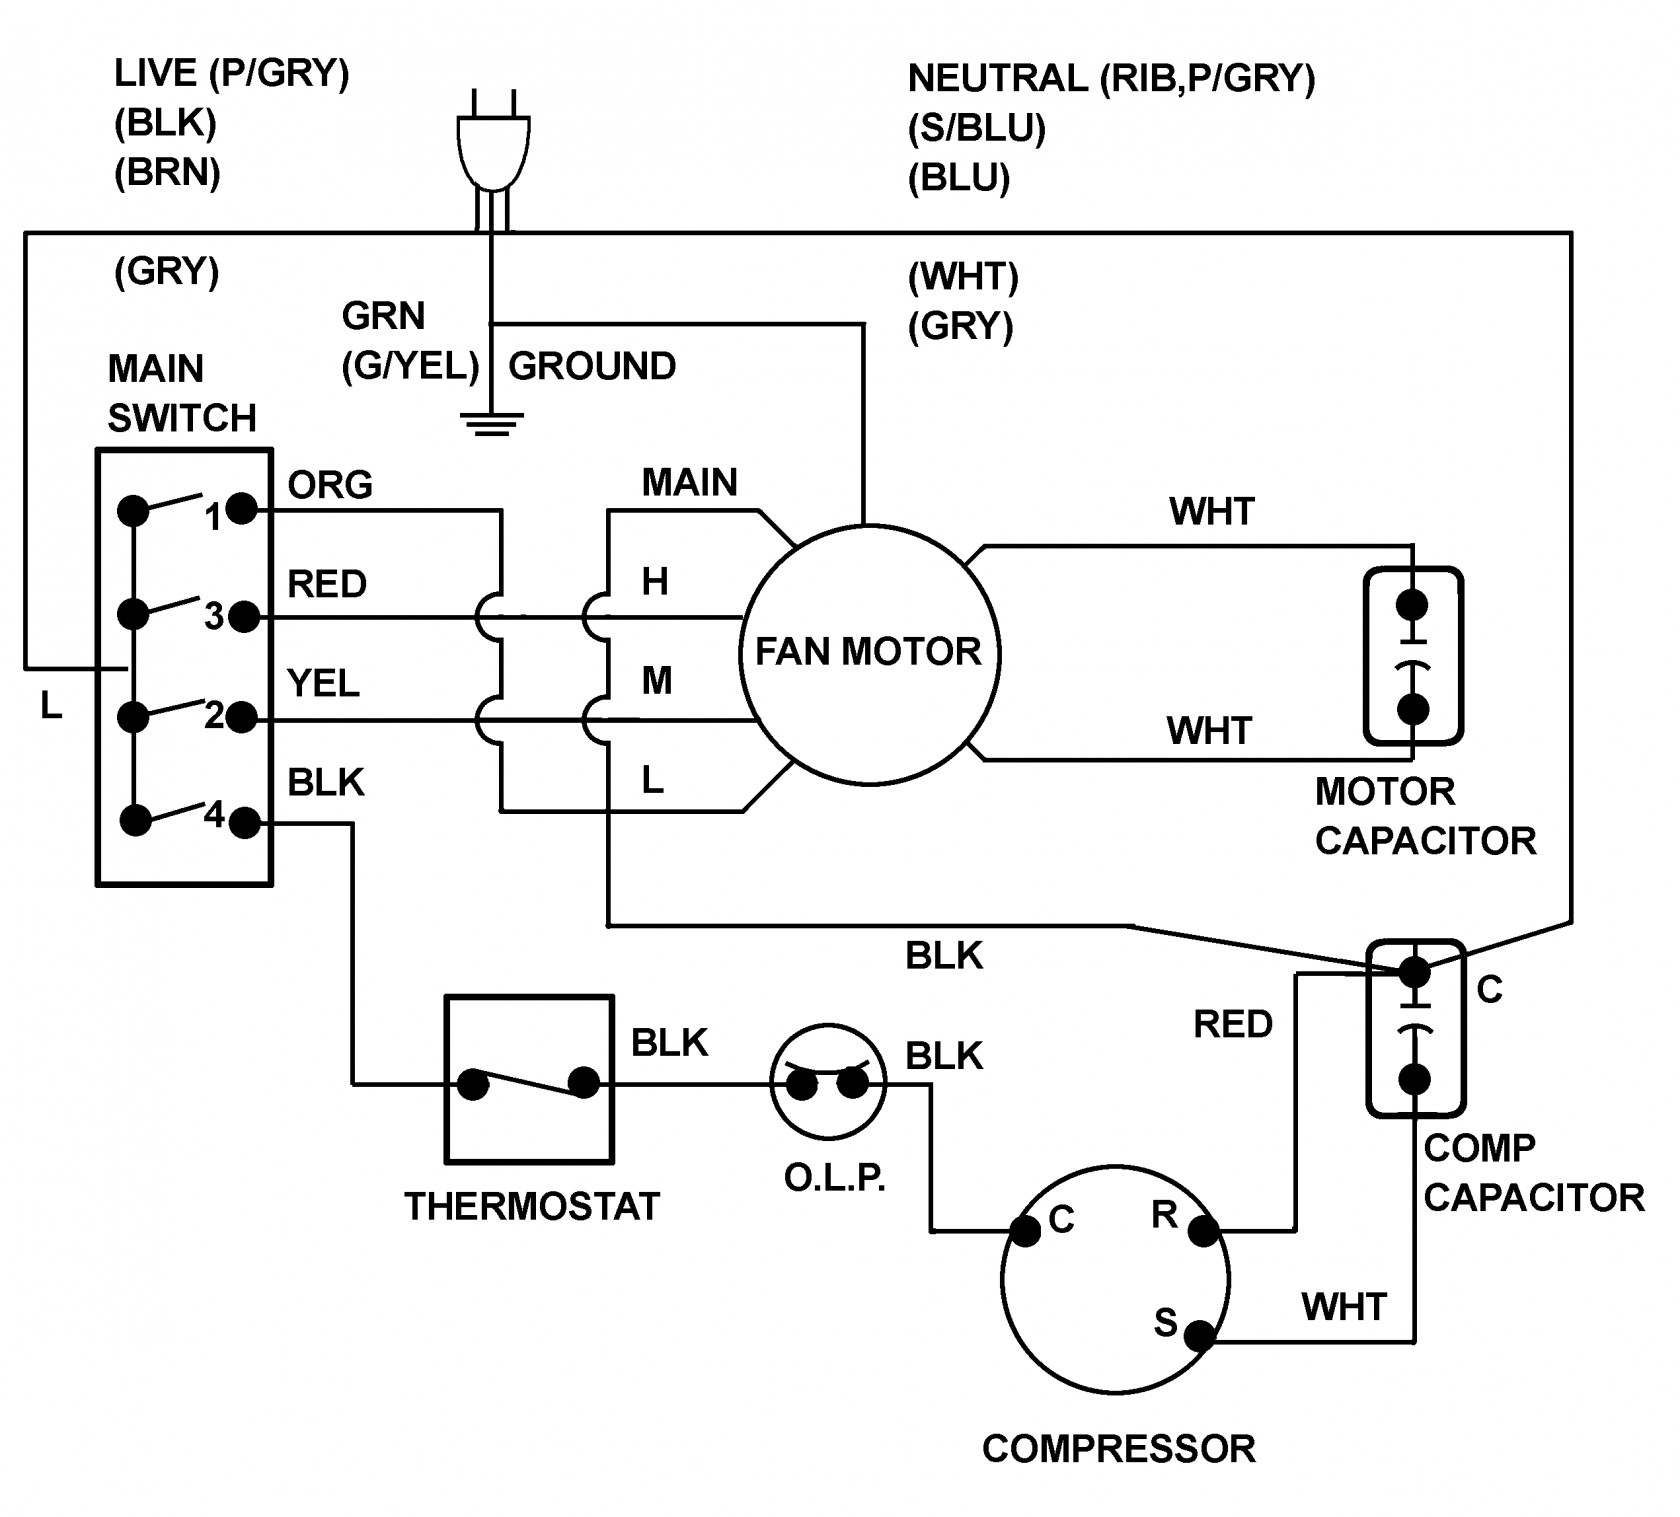 Ac Fan Capacitor Wiring Diagram | Wiring Library - Capacitor Wiring Diagram